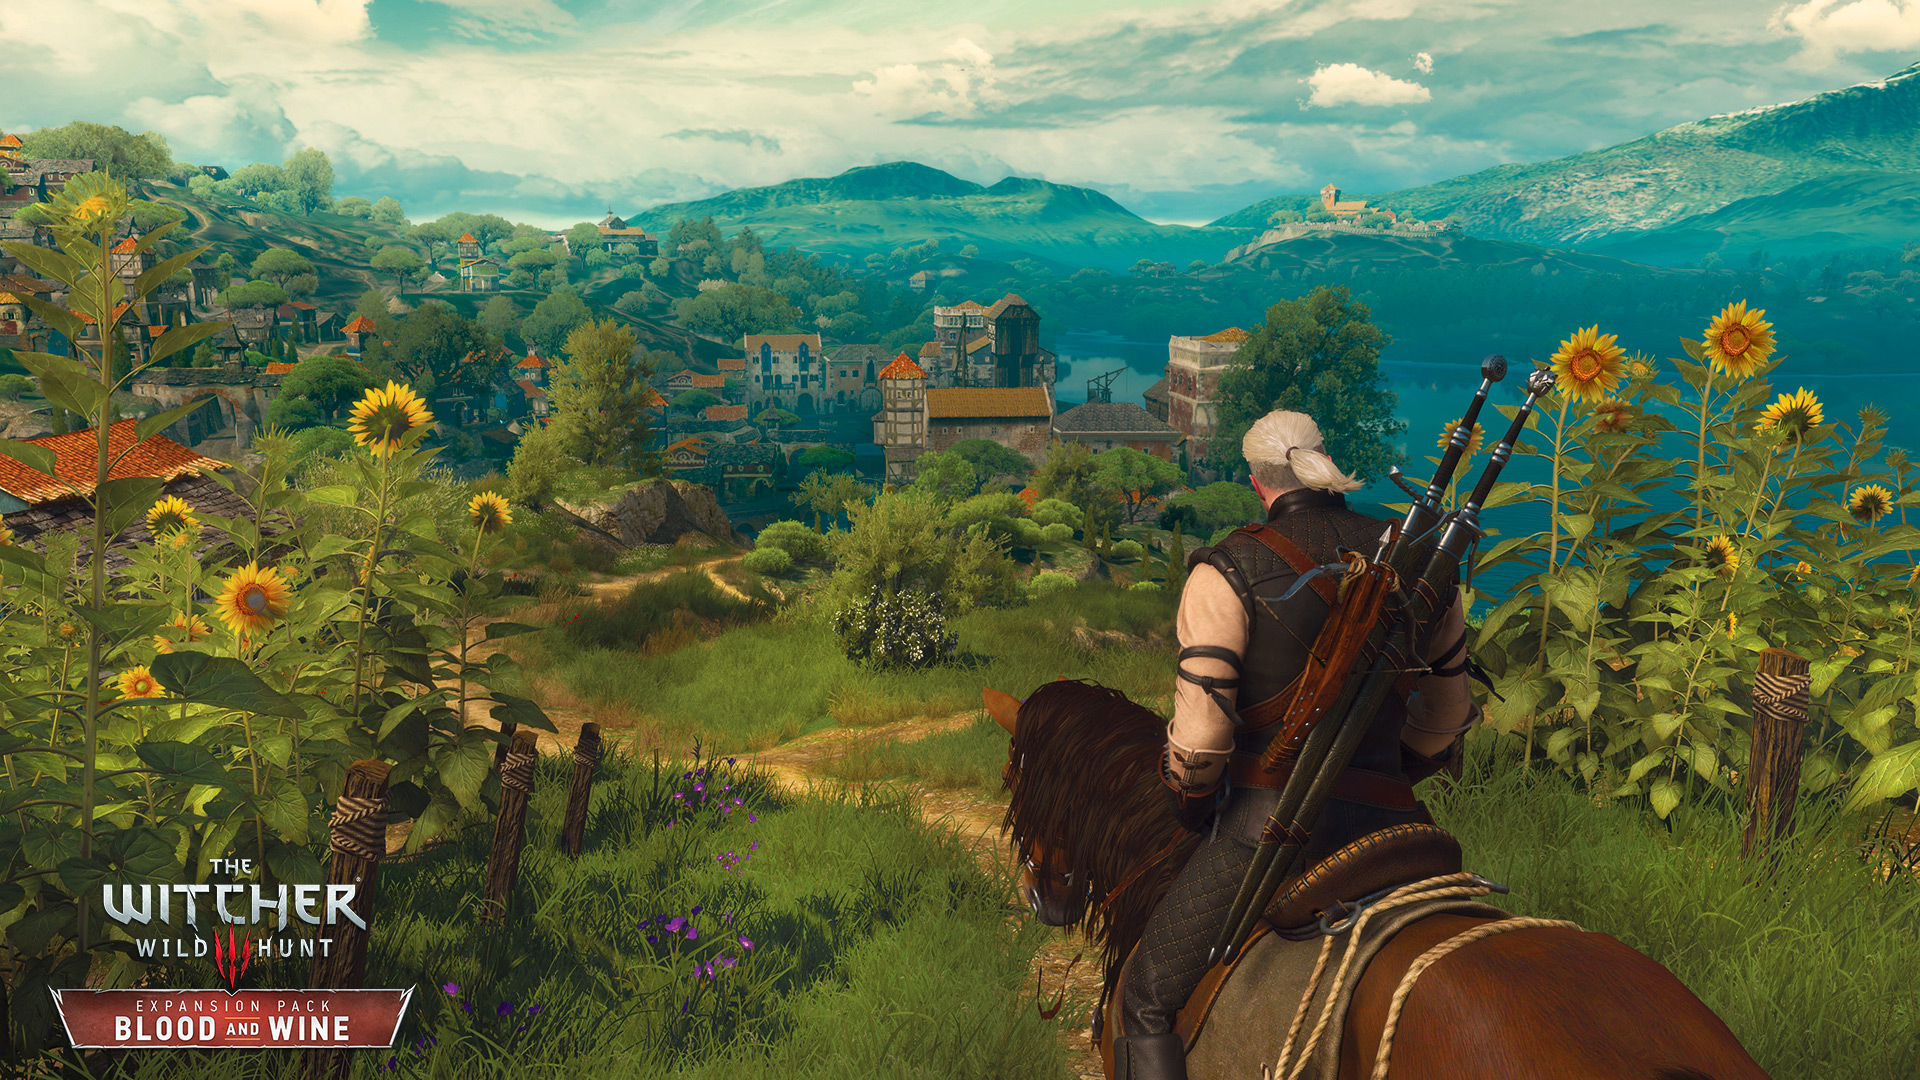 The Witcher 3 Wild Hunt Blood and Wine Toussaint is full of places just waiting to be discovered RGB EN 1464106316.0 Witcher 3: Blood And Wine Is A Fitting End To Geralts Adventures